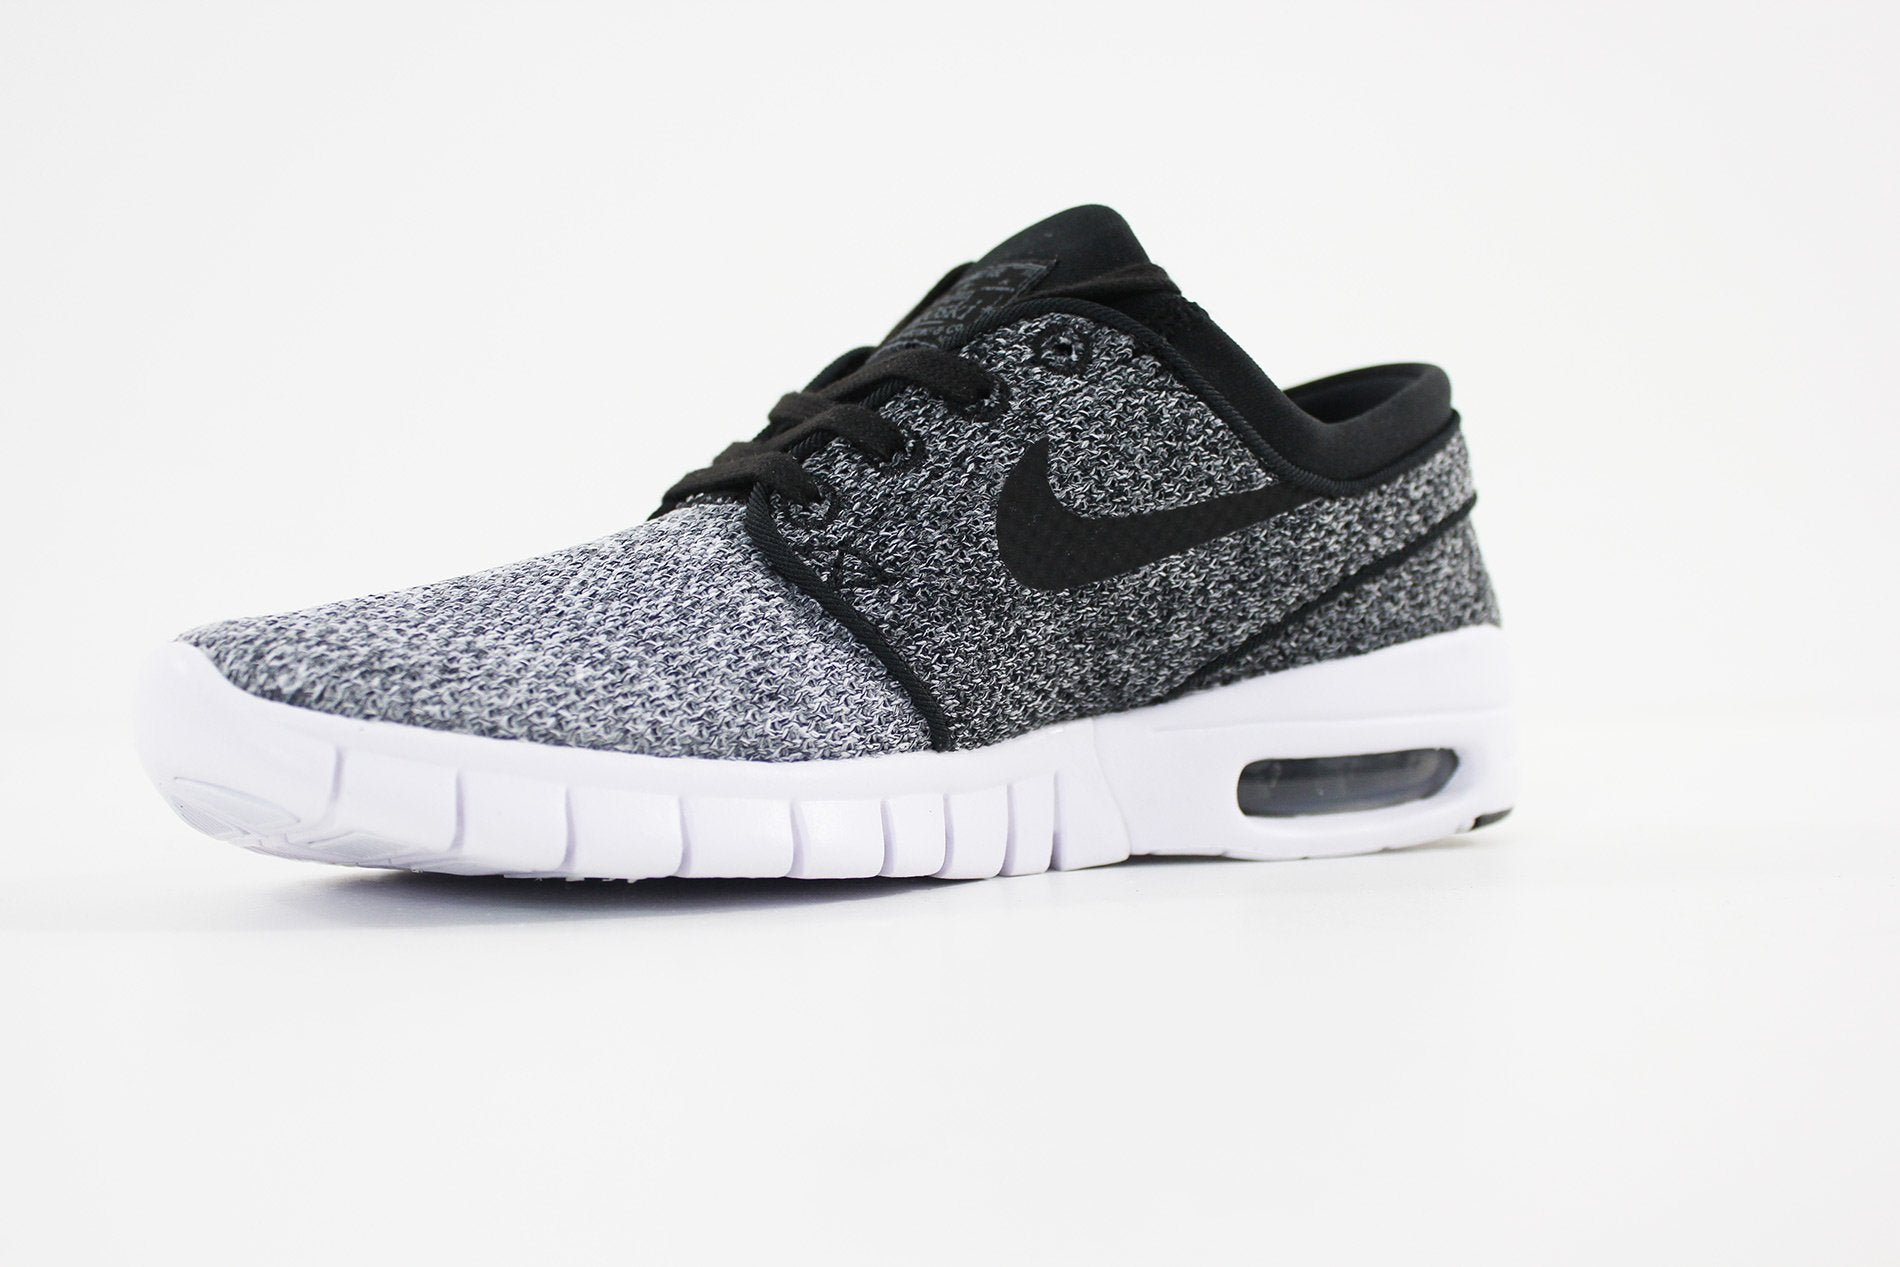 buy popular 7180a 94ecf Nike - Men s Nike SB Stefan Janoski Max Skateboarding Shoe (WHITE BLACK-DARK  GREY) 631303-102